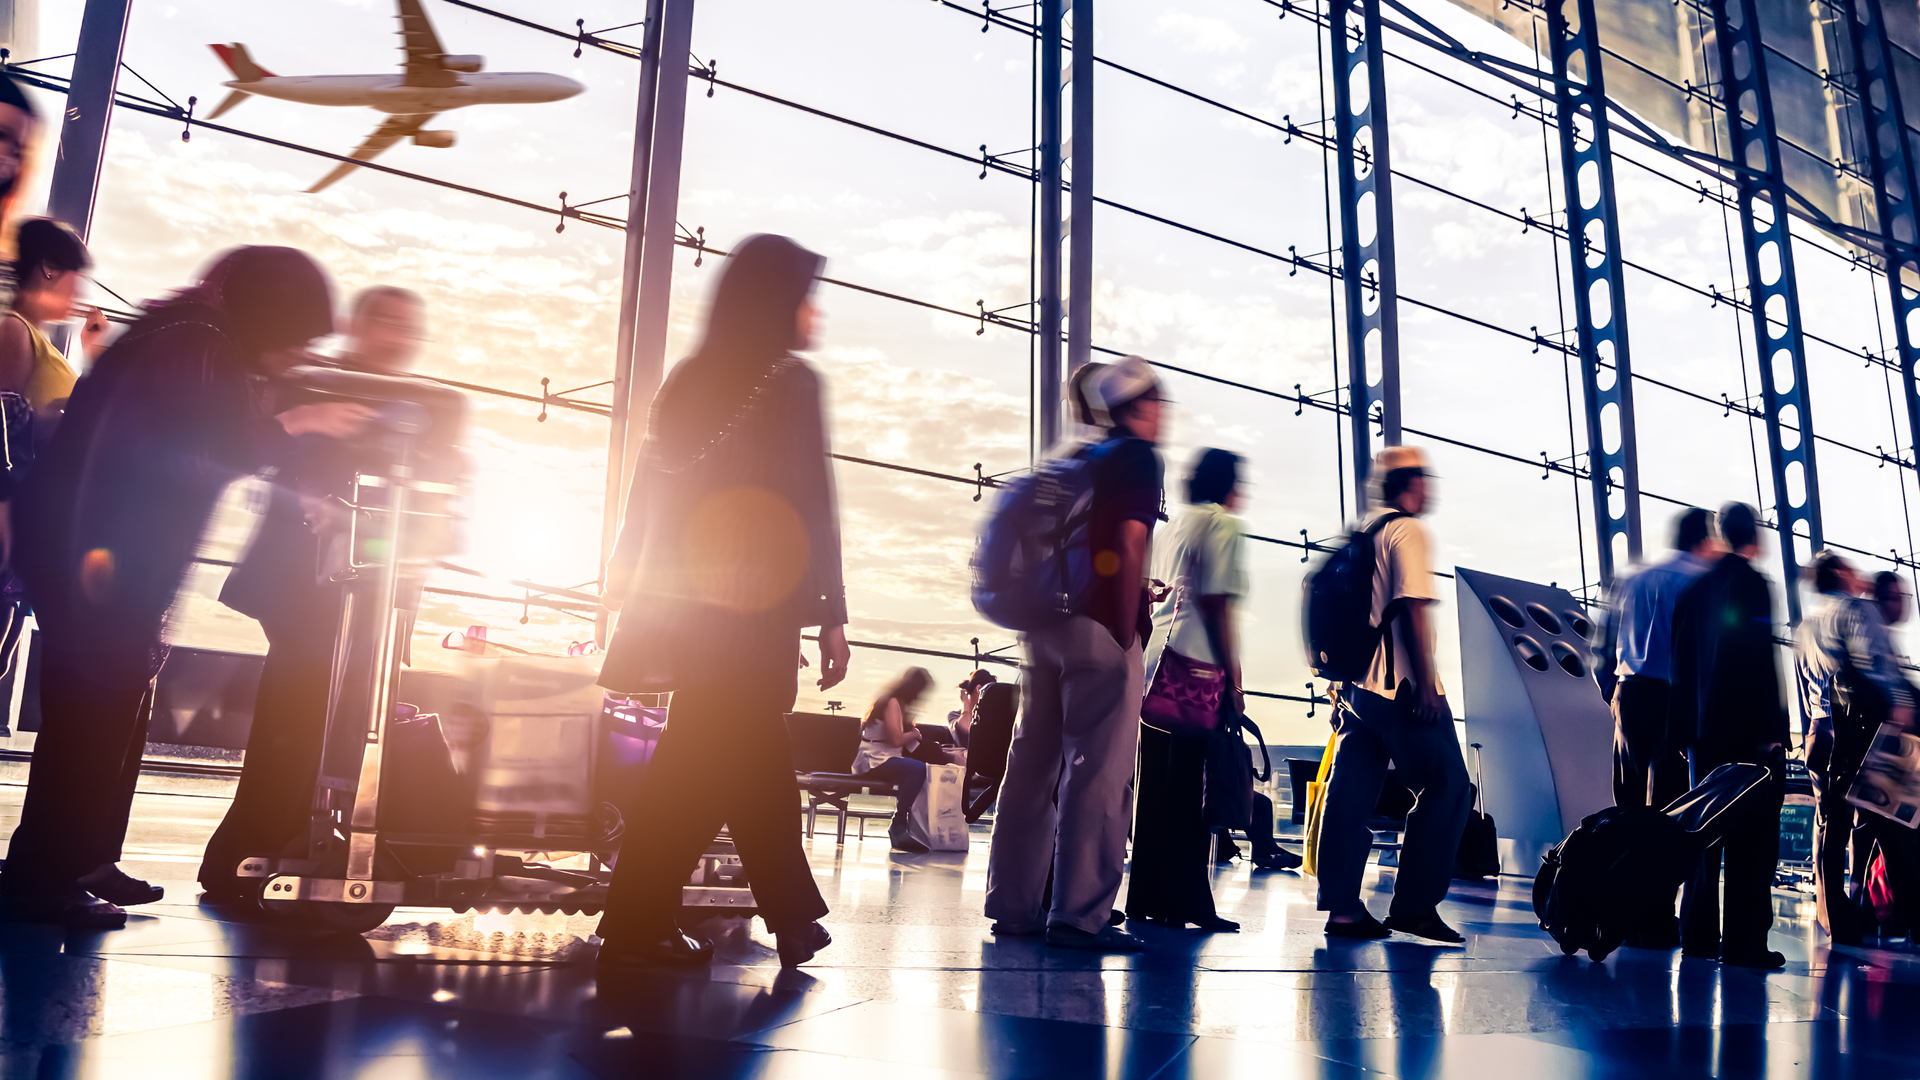 IATA Survey: Passengers Are Looking for a More Connected Travel Experience